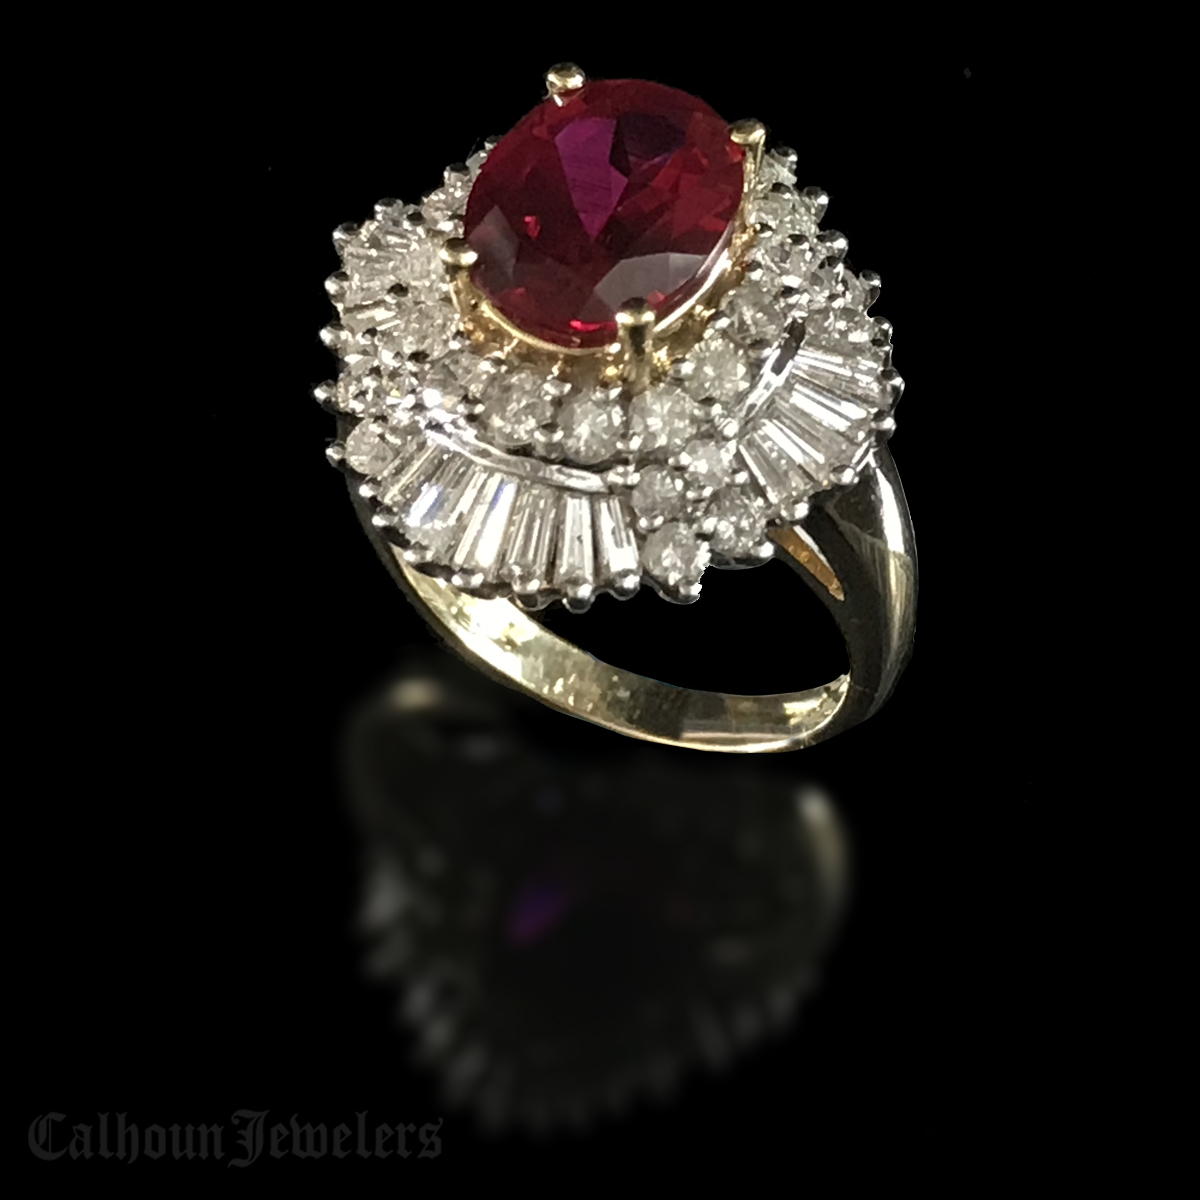 Synthetic Verneuil Flame Fusion Ruby Cocktail Ring